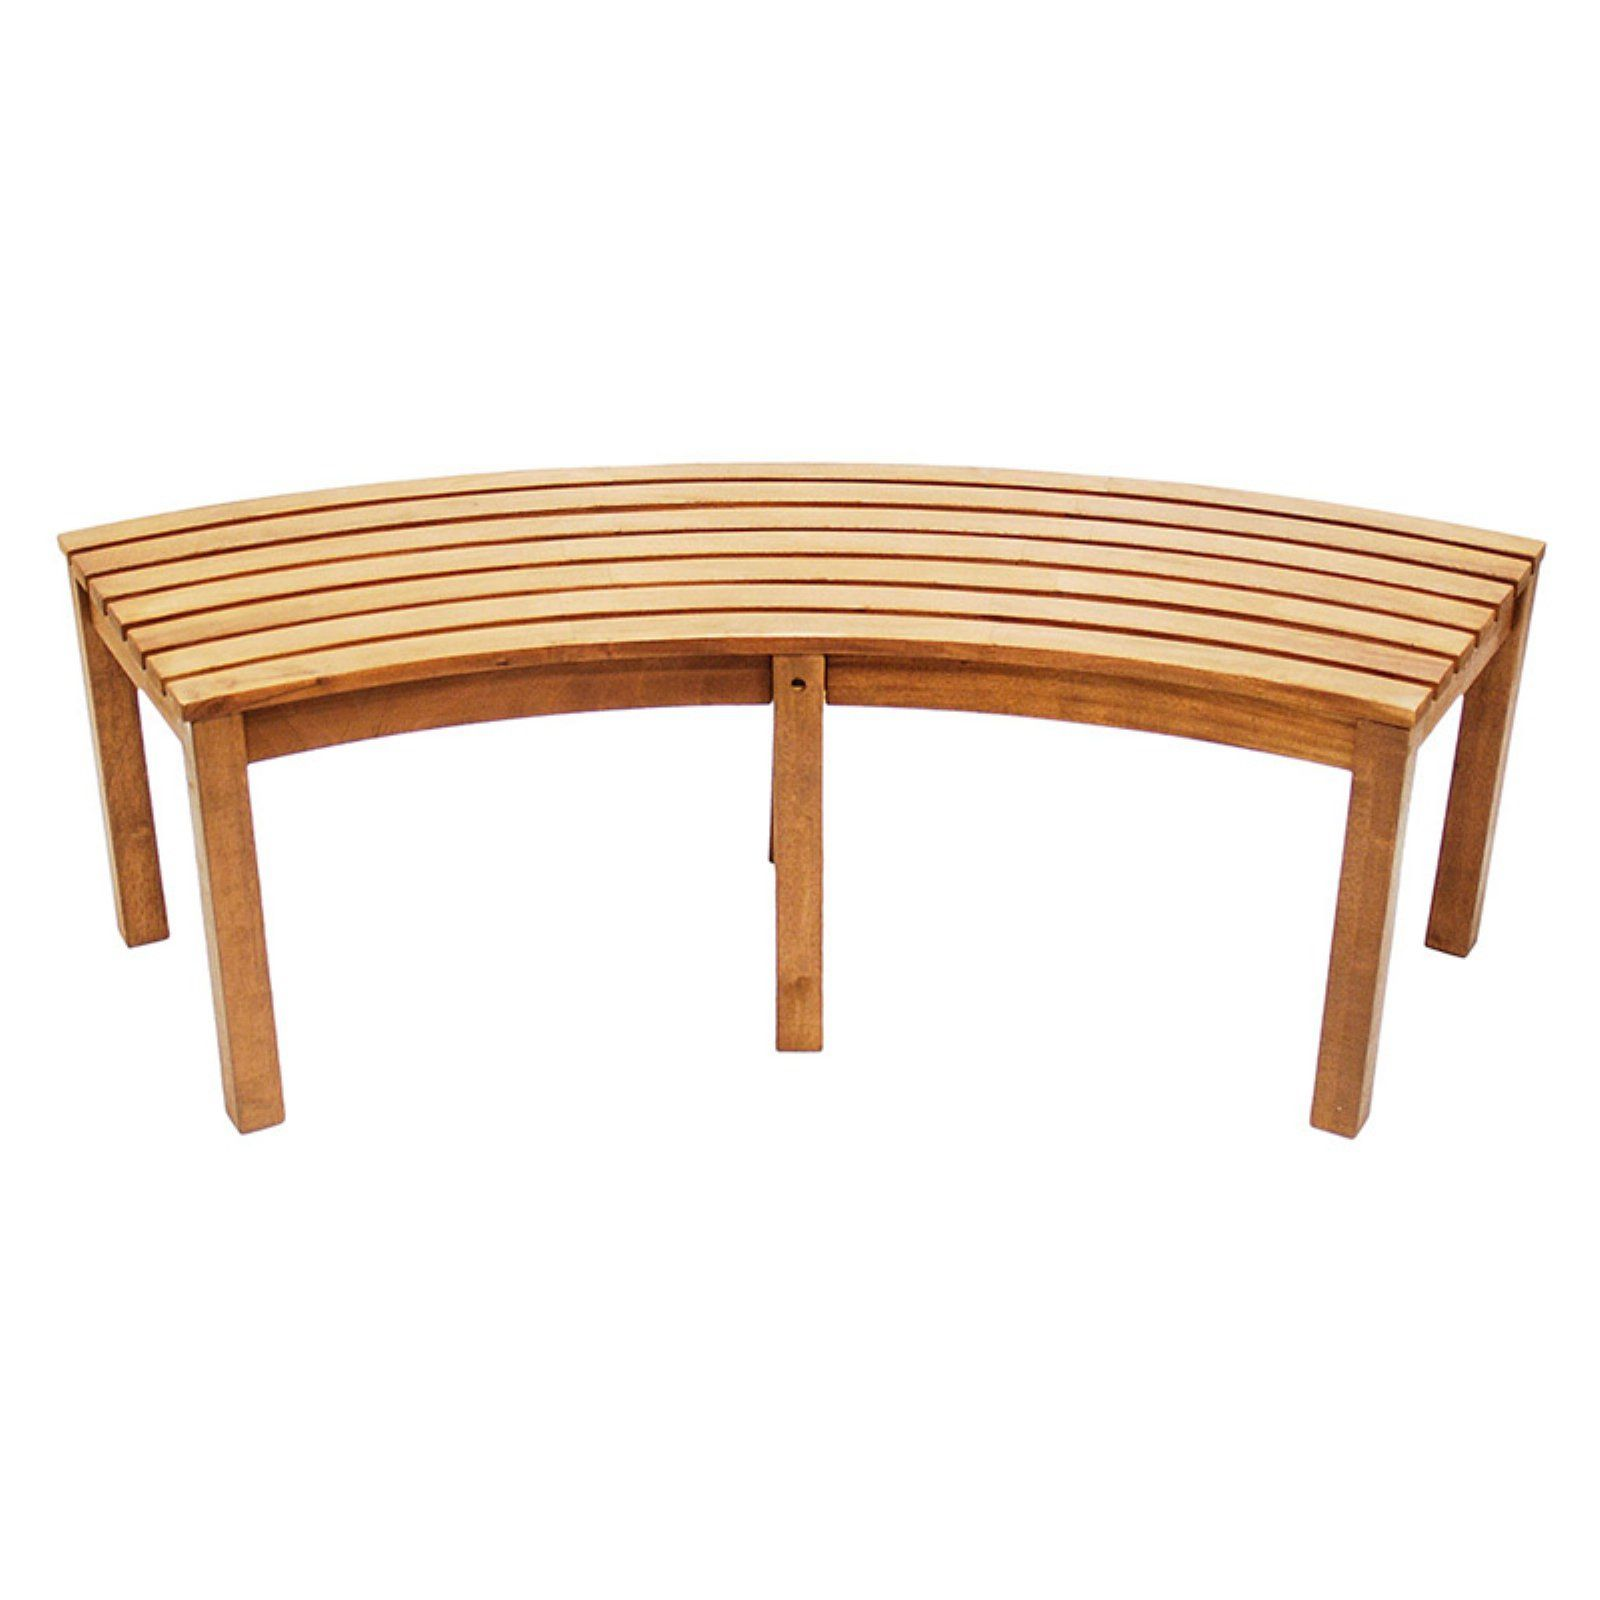 Patio Garden In 2020 Curved Bench Bench Outdoor Bench